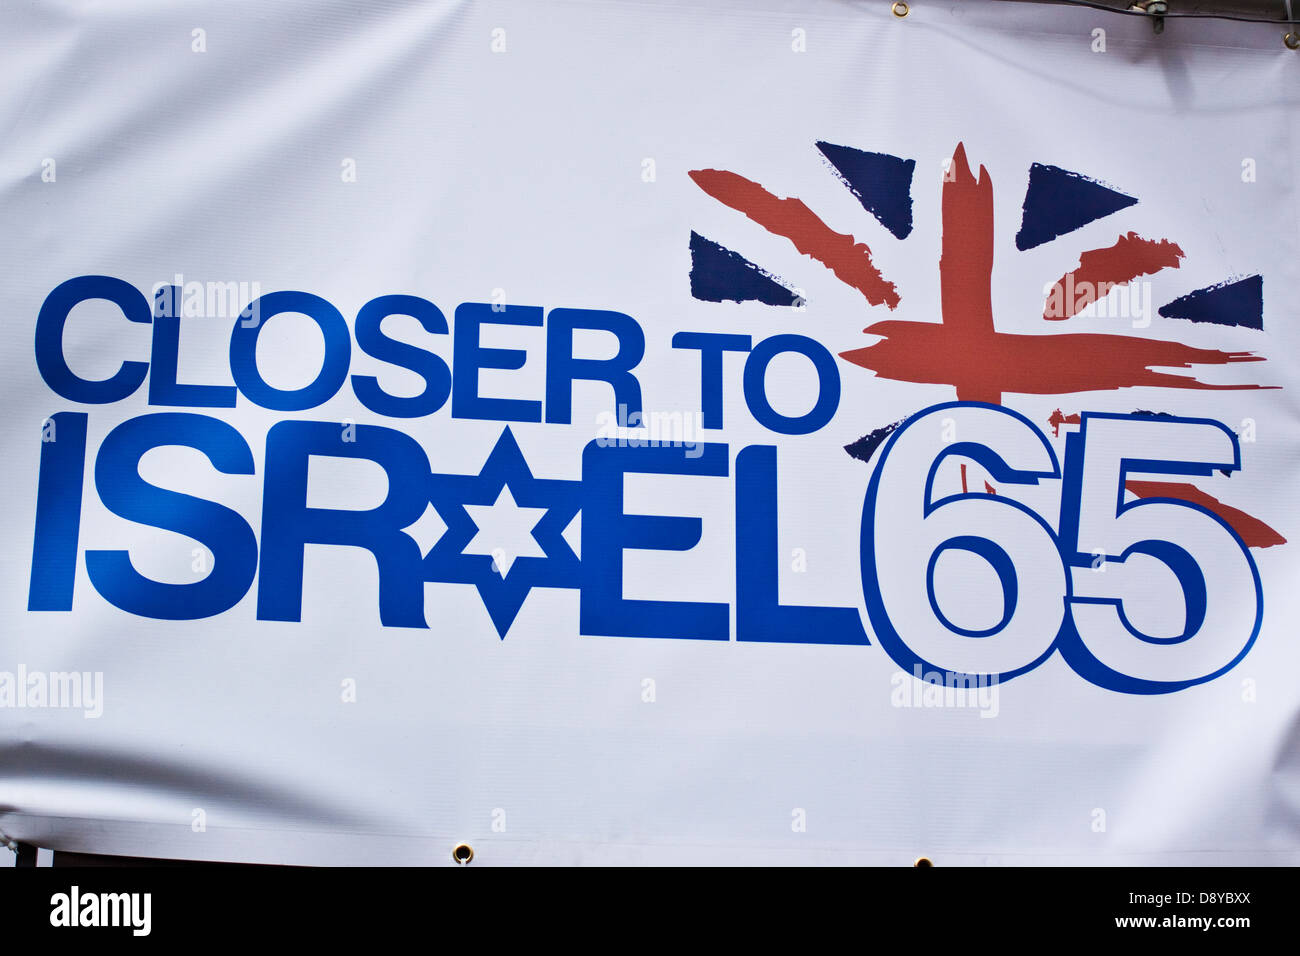 Closer to Israel 65-London - Stock Image